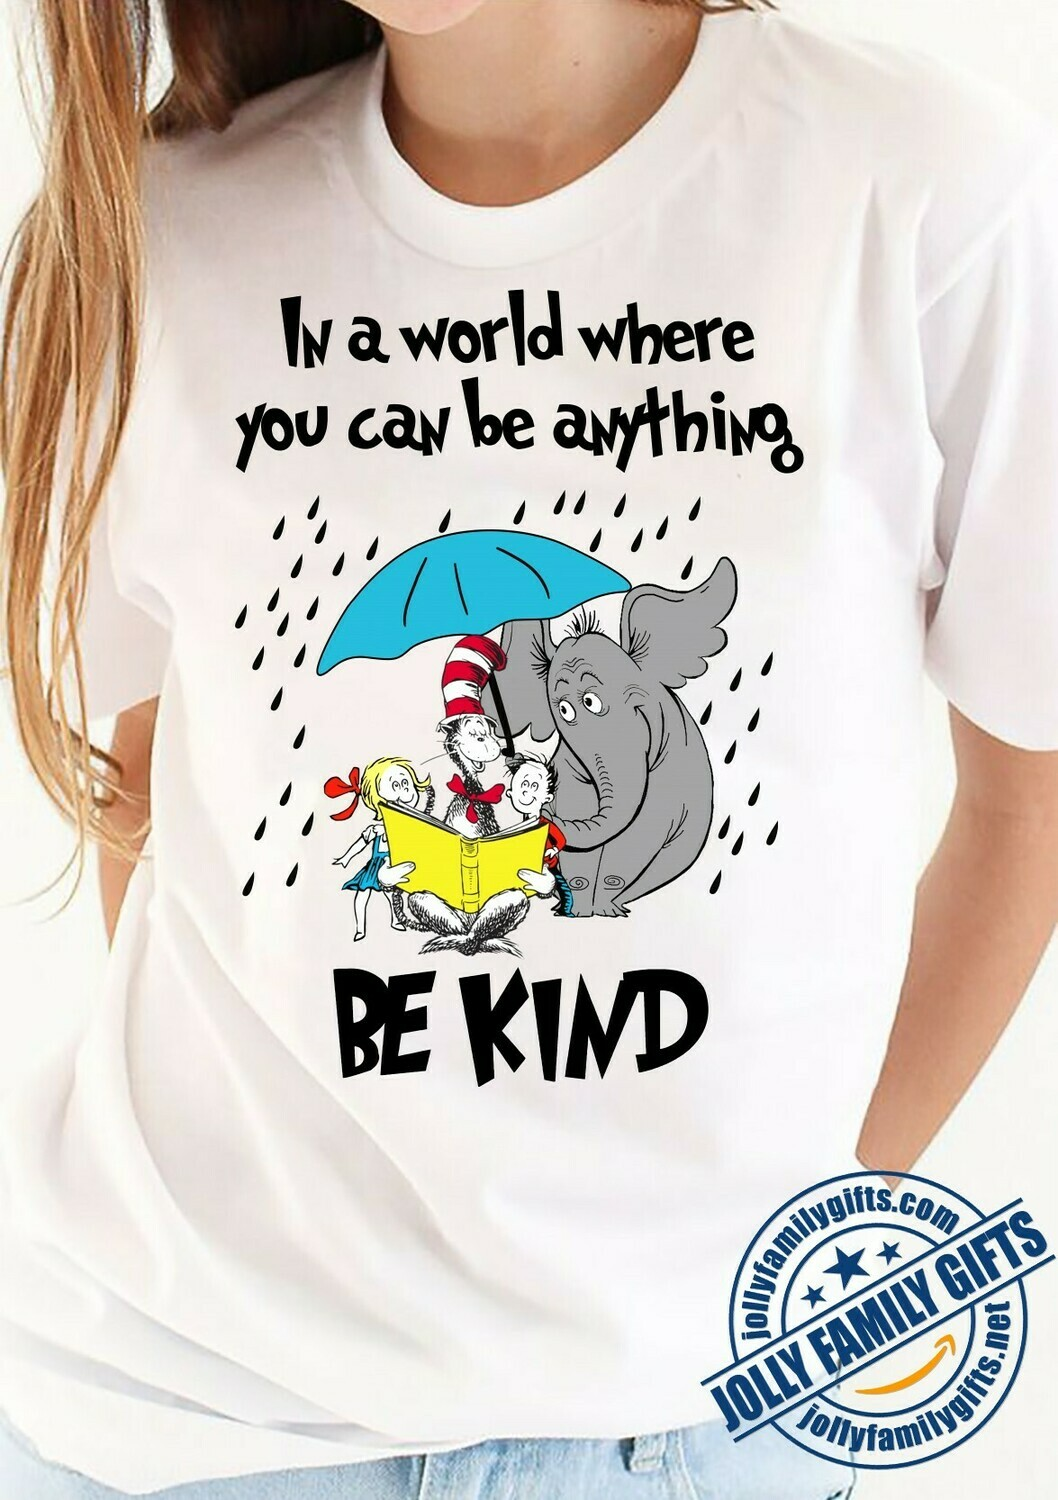 In a World where you can be anything Be kind Dr. Seuss Quotes T-shirt for National Read Across America Day Unisex T-Shirt Hoodie Sweatshirt Sweater Plus Size for Ladies Women Men Kids Youth Gifts Tee